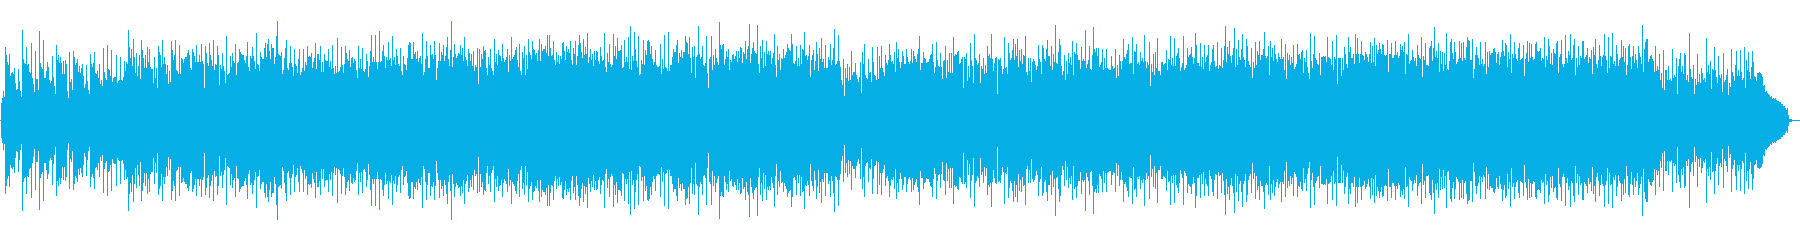 Live violin, bright, refreshing, OP's reproduced waveform